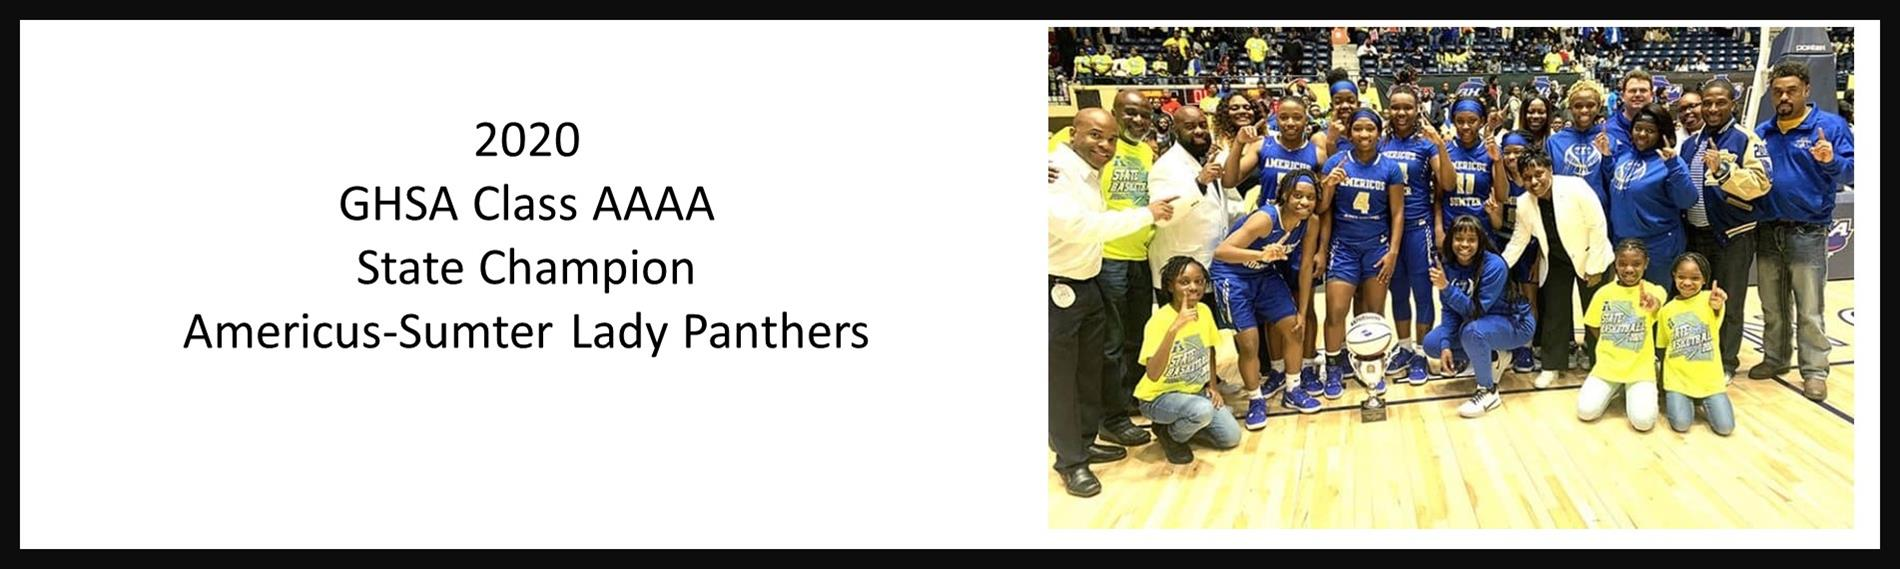 2020  GHSA Class AAAA  State Champion  Americus-Sumter Lady Panthers